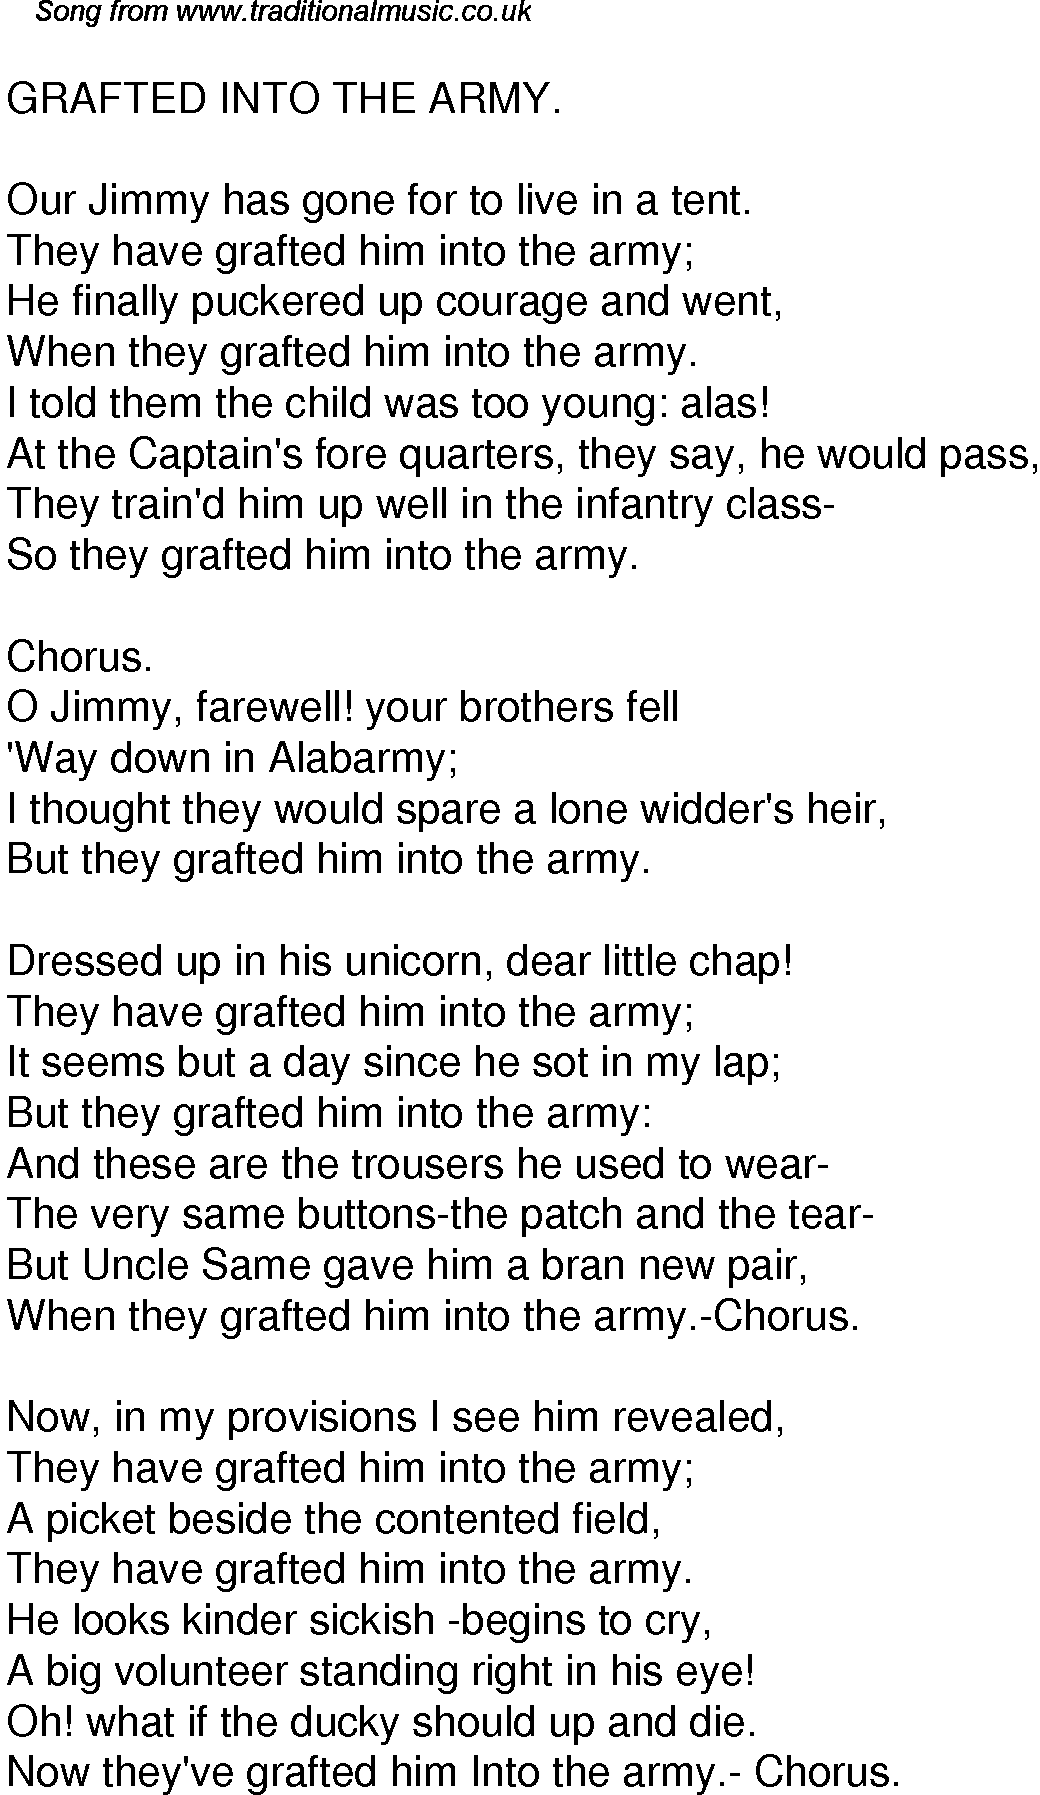 Old Time Song Lyrics for 59 Grafted Into The Army